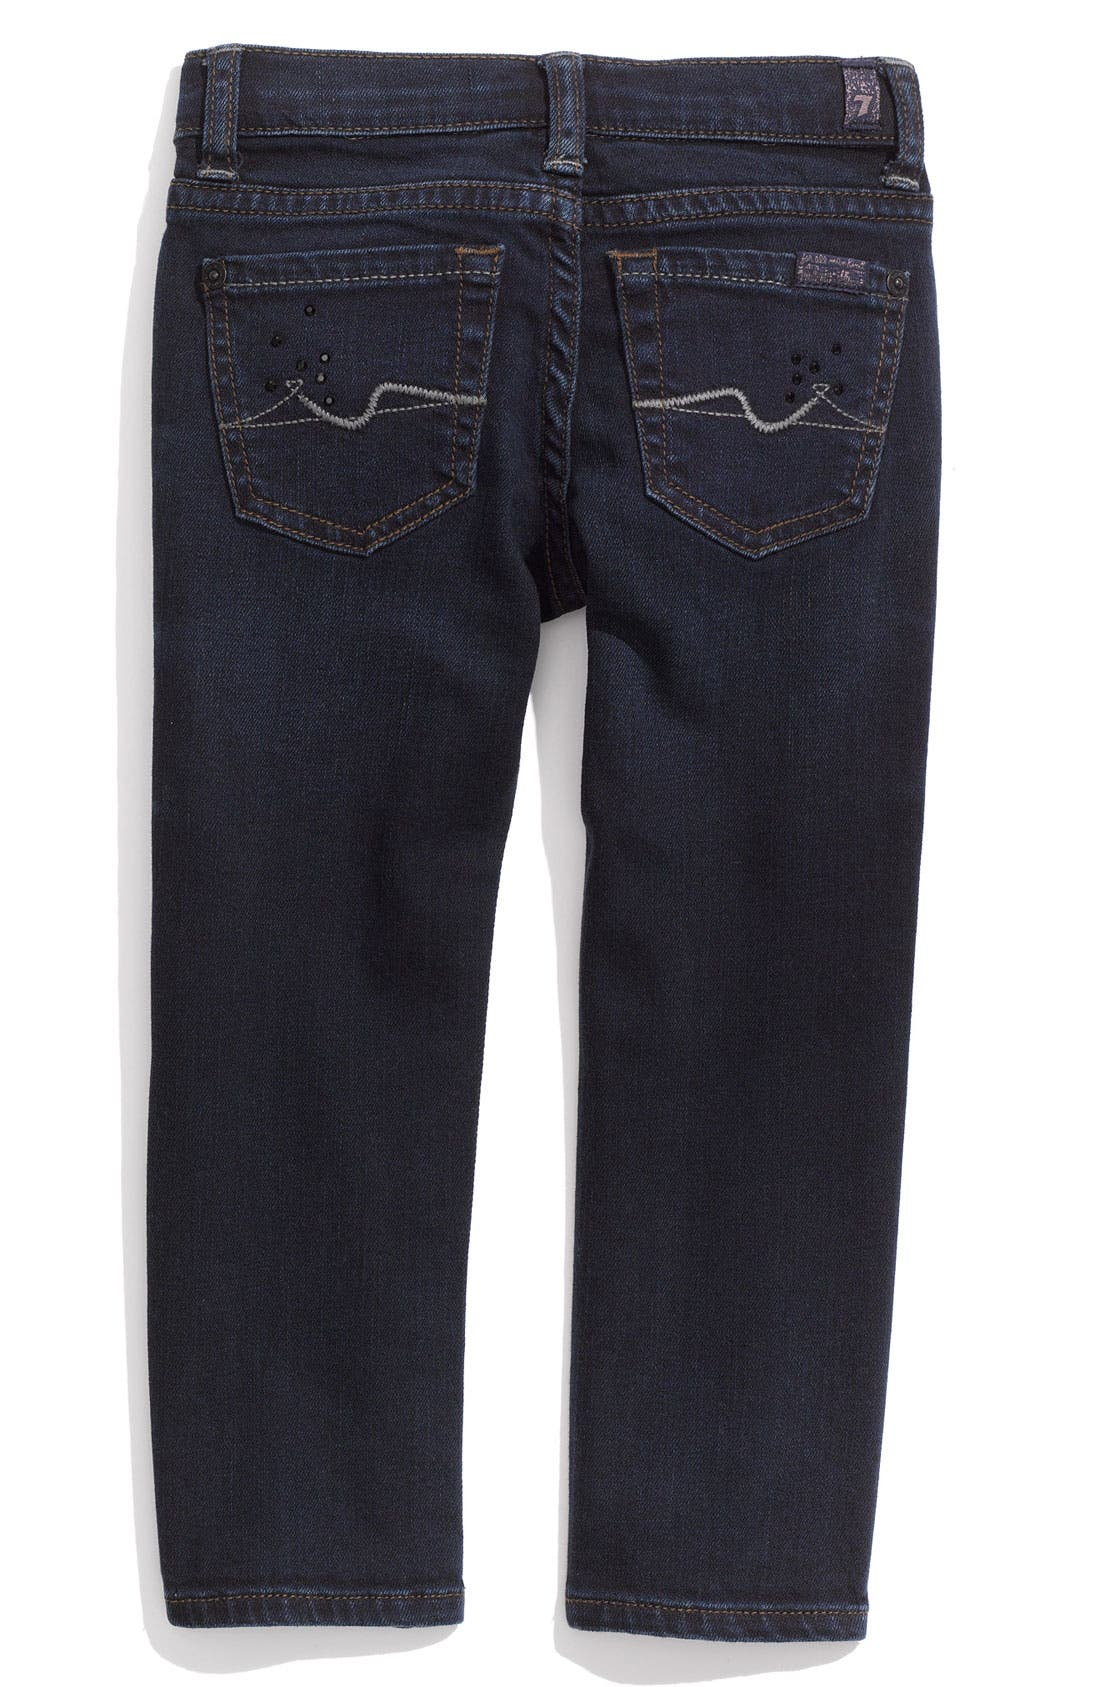 Alternate Image 1 Selected - 7 For All Mankind® 'Roxanne' Jeans (Toddler)